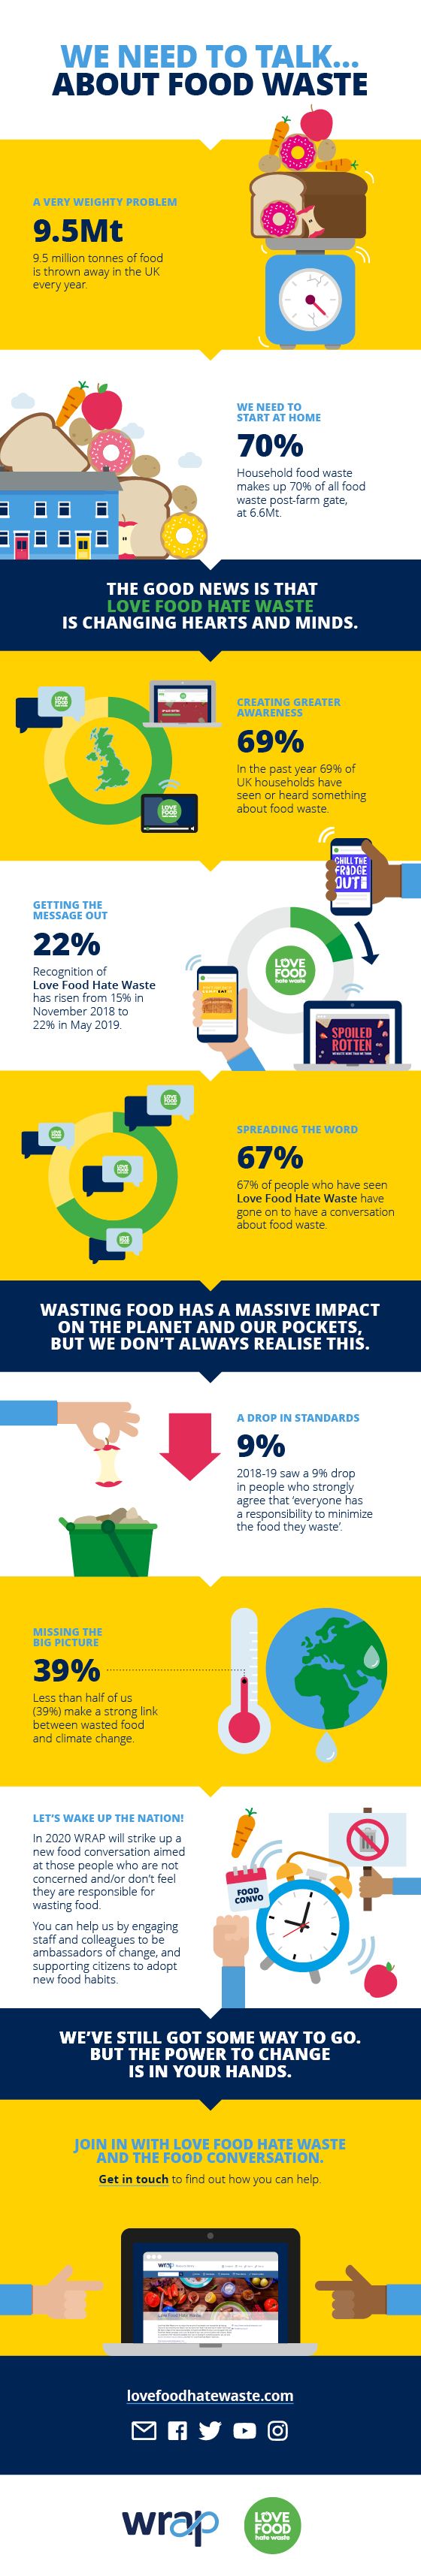 Food waste trends survey 2019 infographic